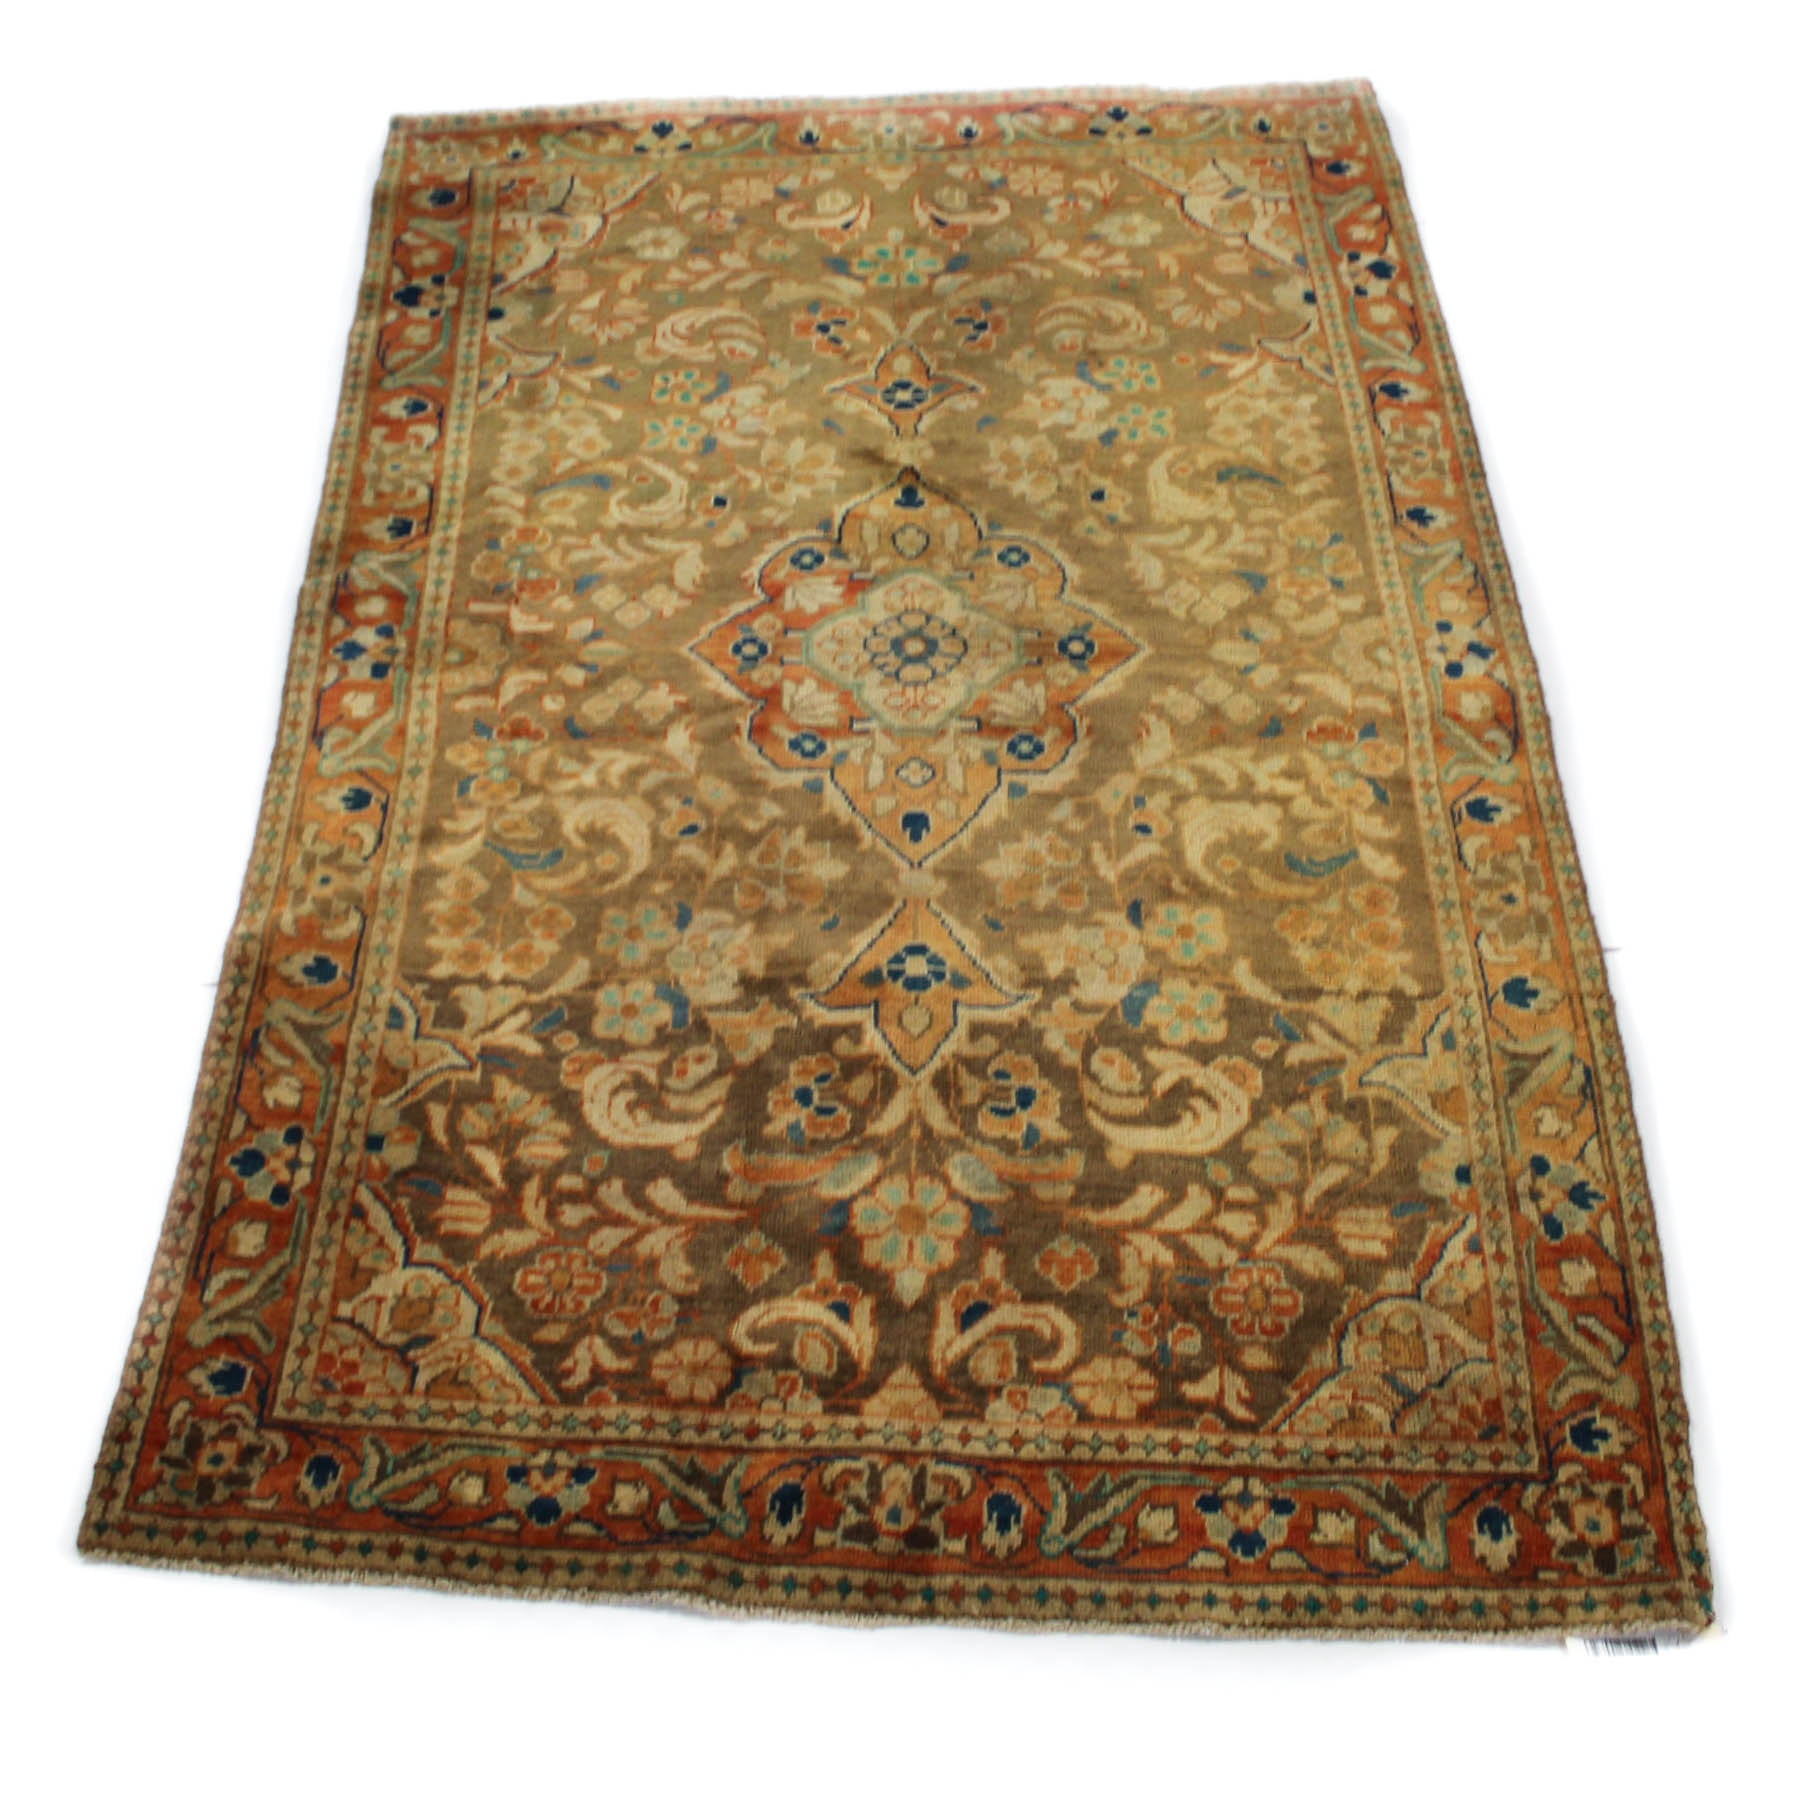 Vintage Hand-Knotted Indo-Persian Sarouk Rug